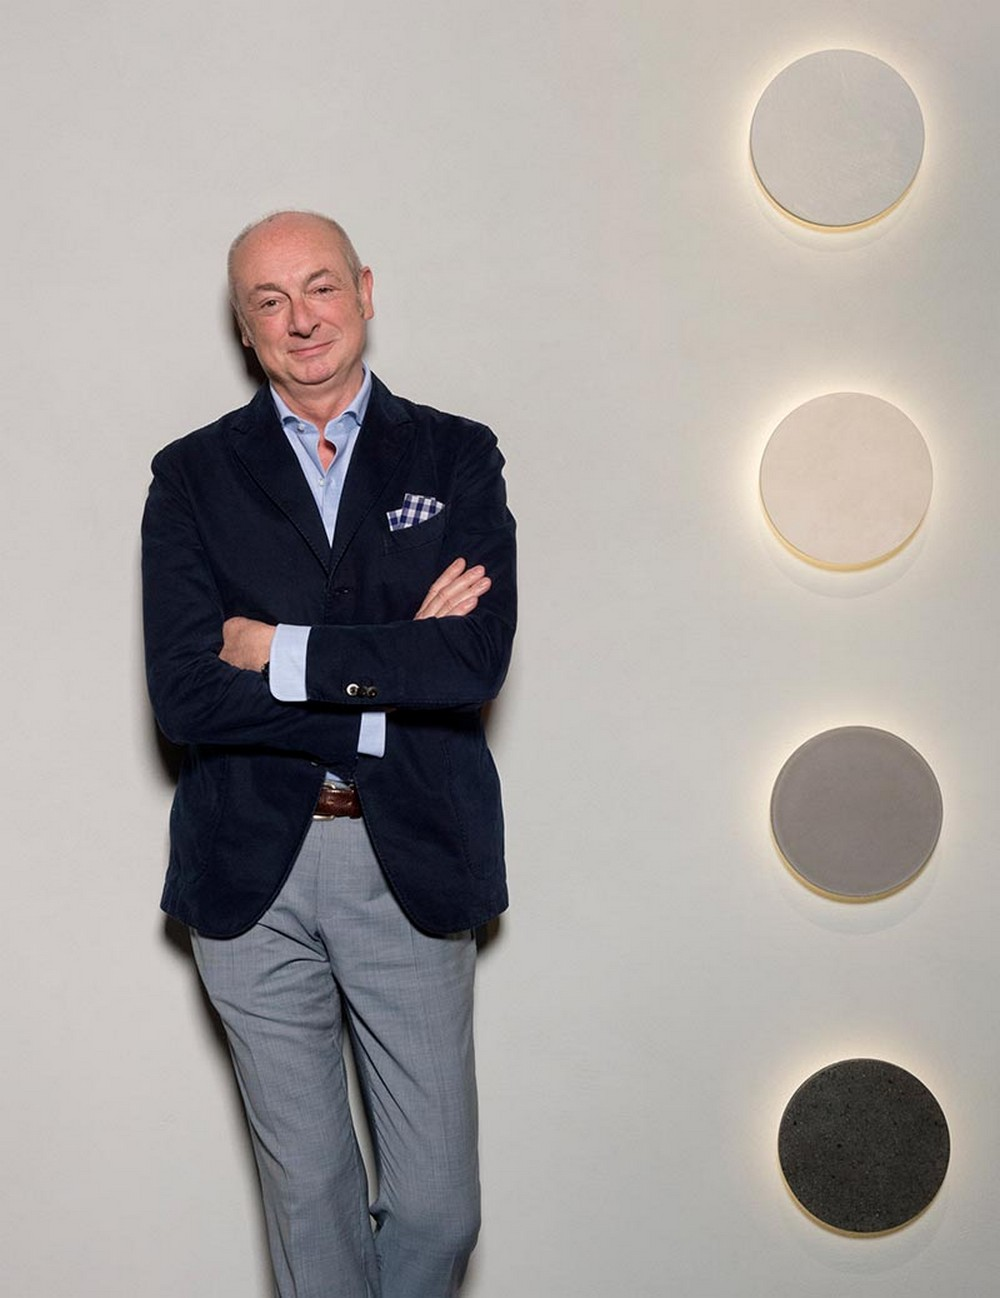 Piero Lissoni Talks About His Inspiring Design and Architecture Career piero lissoni Piero Lissoni Talks About His Inspiring Design and Architecture Career Piero Lissoni Talks About His Inspiring Design and Architecture Career 5